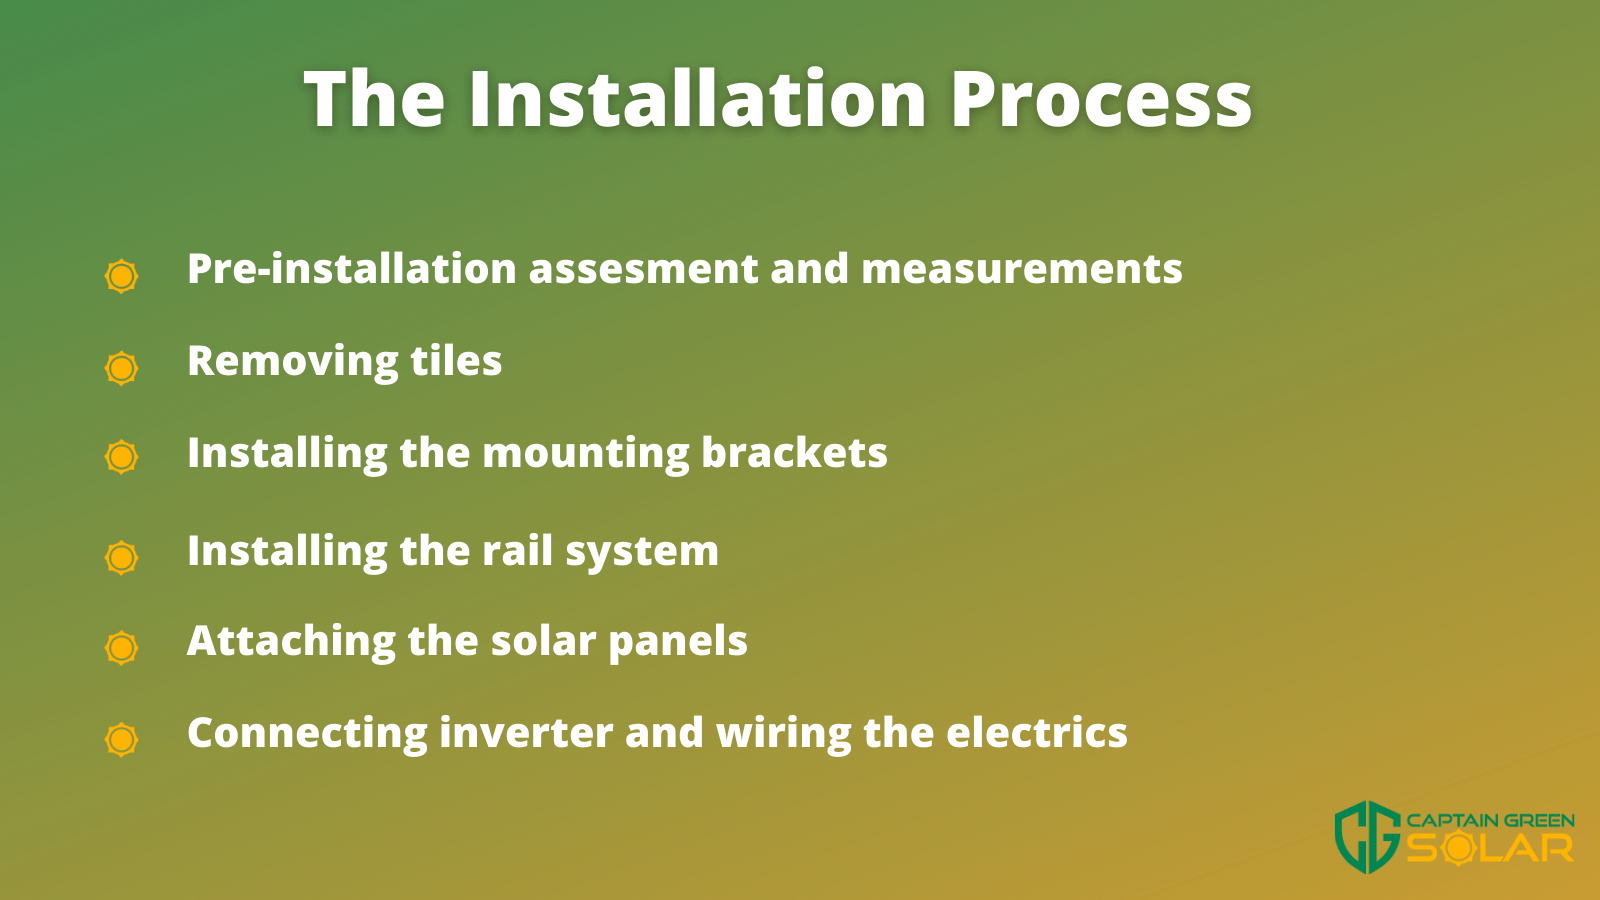 how are solar panels installed on tile roofs